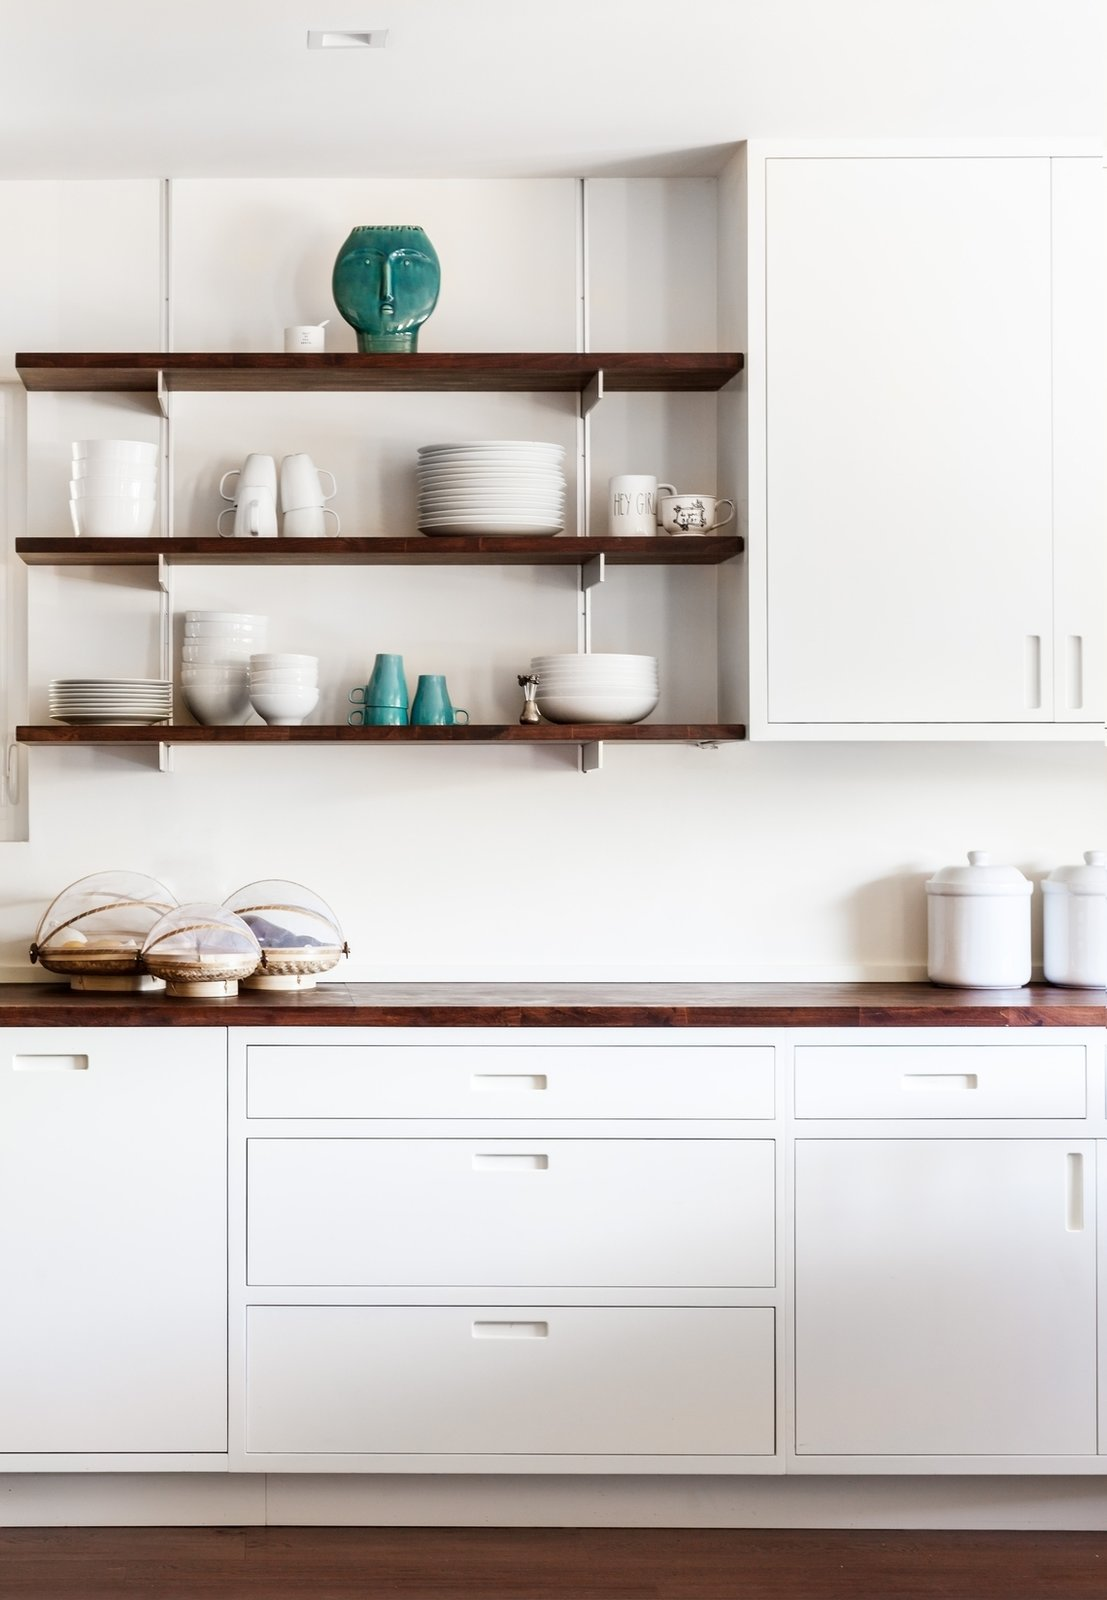 Marble Counter, Wood Counter, White Cabinet, Dark Hardwood Floor, Recessed Lighting, Kitchen, and Open Cabinet Kitchen  Photo 5 of 17 in What's the Most Overlooked Feature When Planning a Kitchen Renovation? from Moss